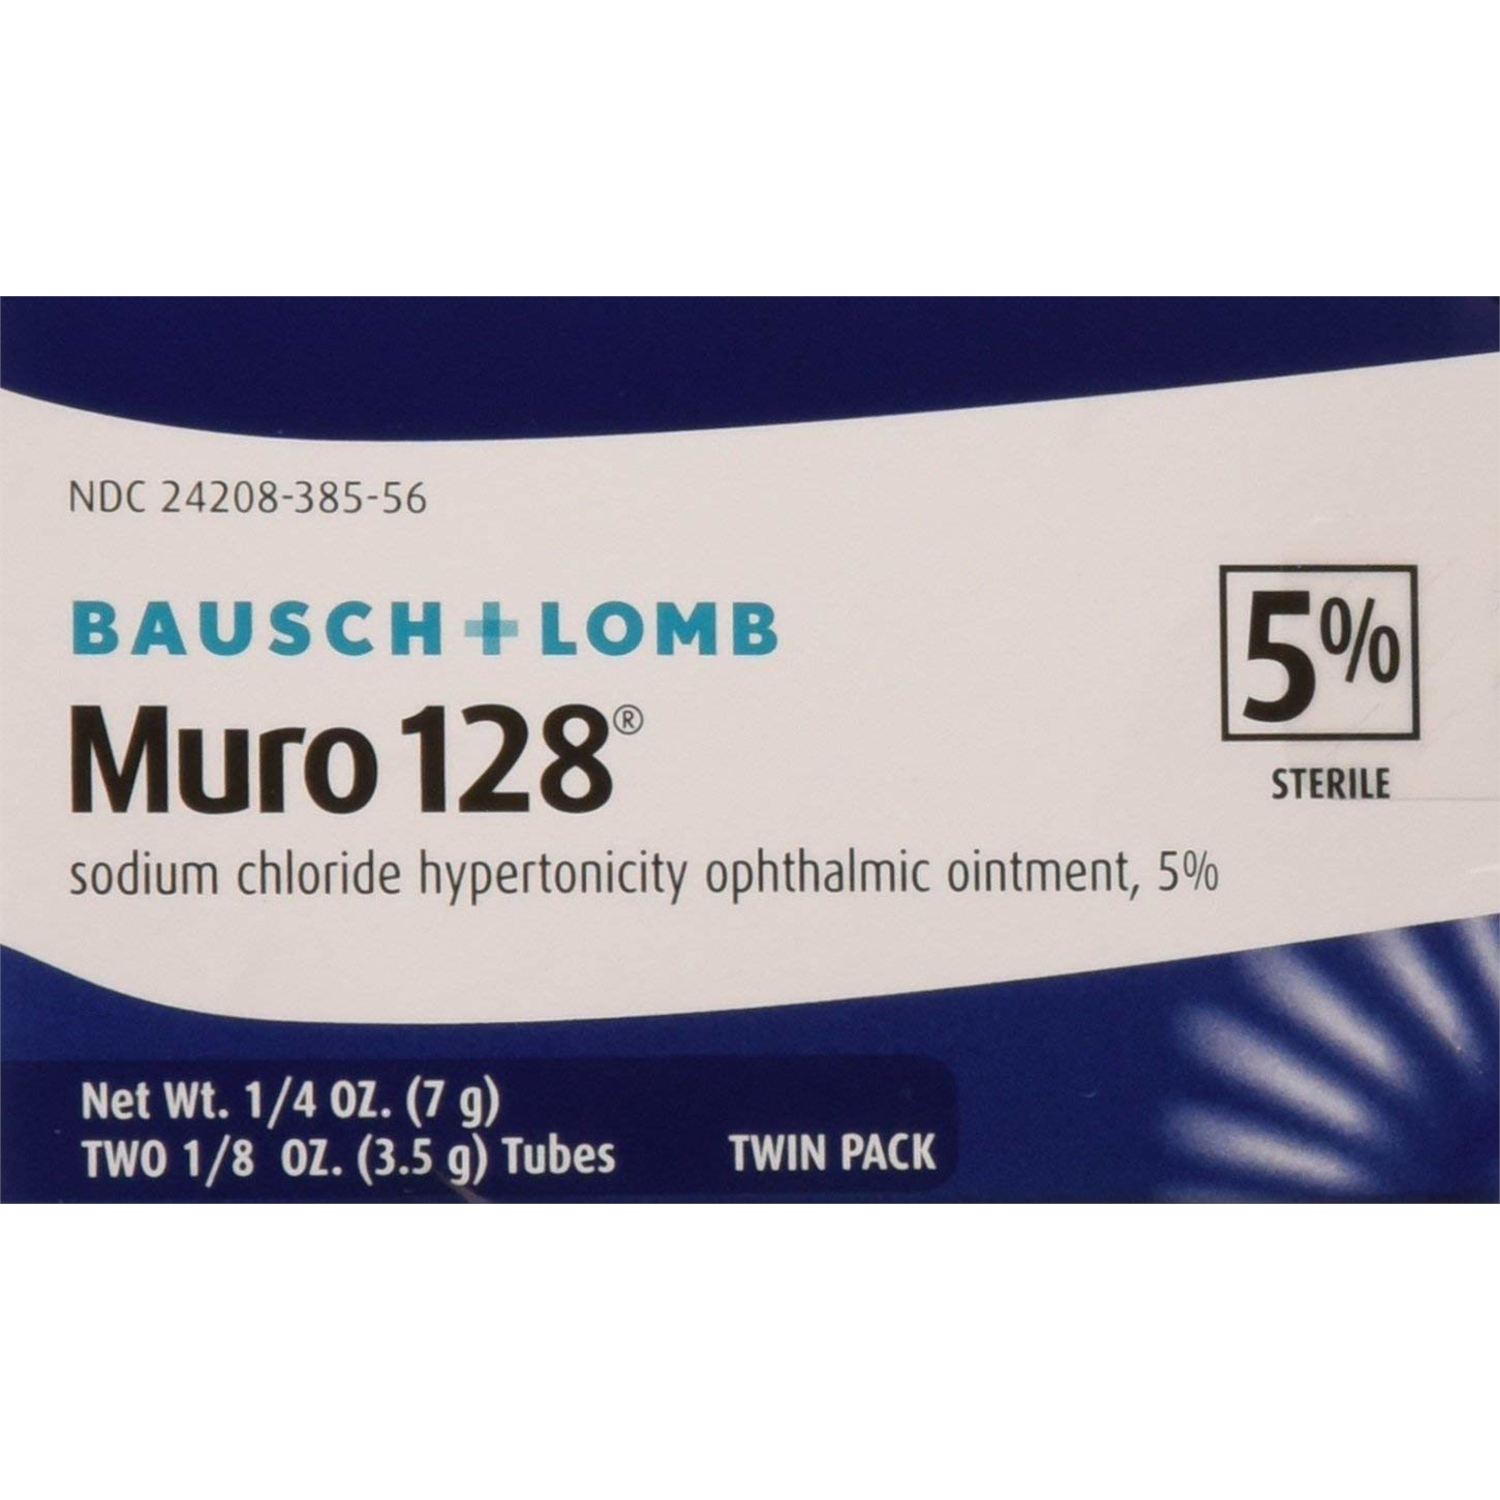 Bausch & Lomb Muro 128 Ointment 5% 2-ct tubes 35G in Each